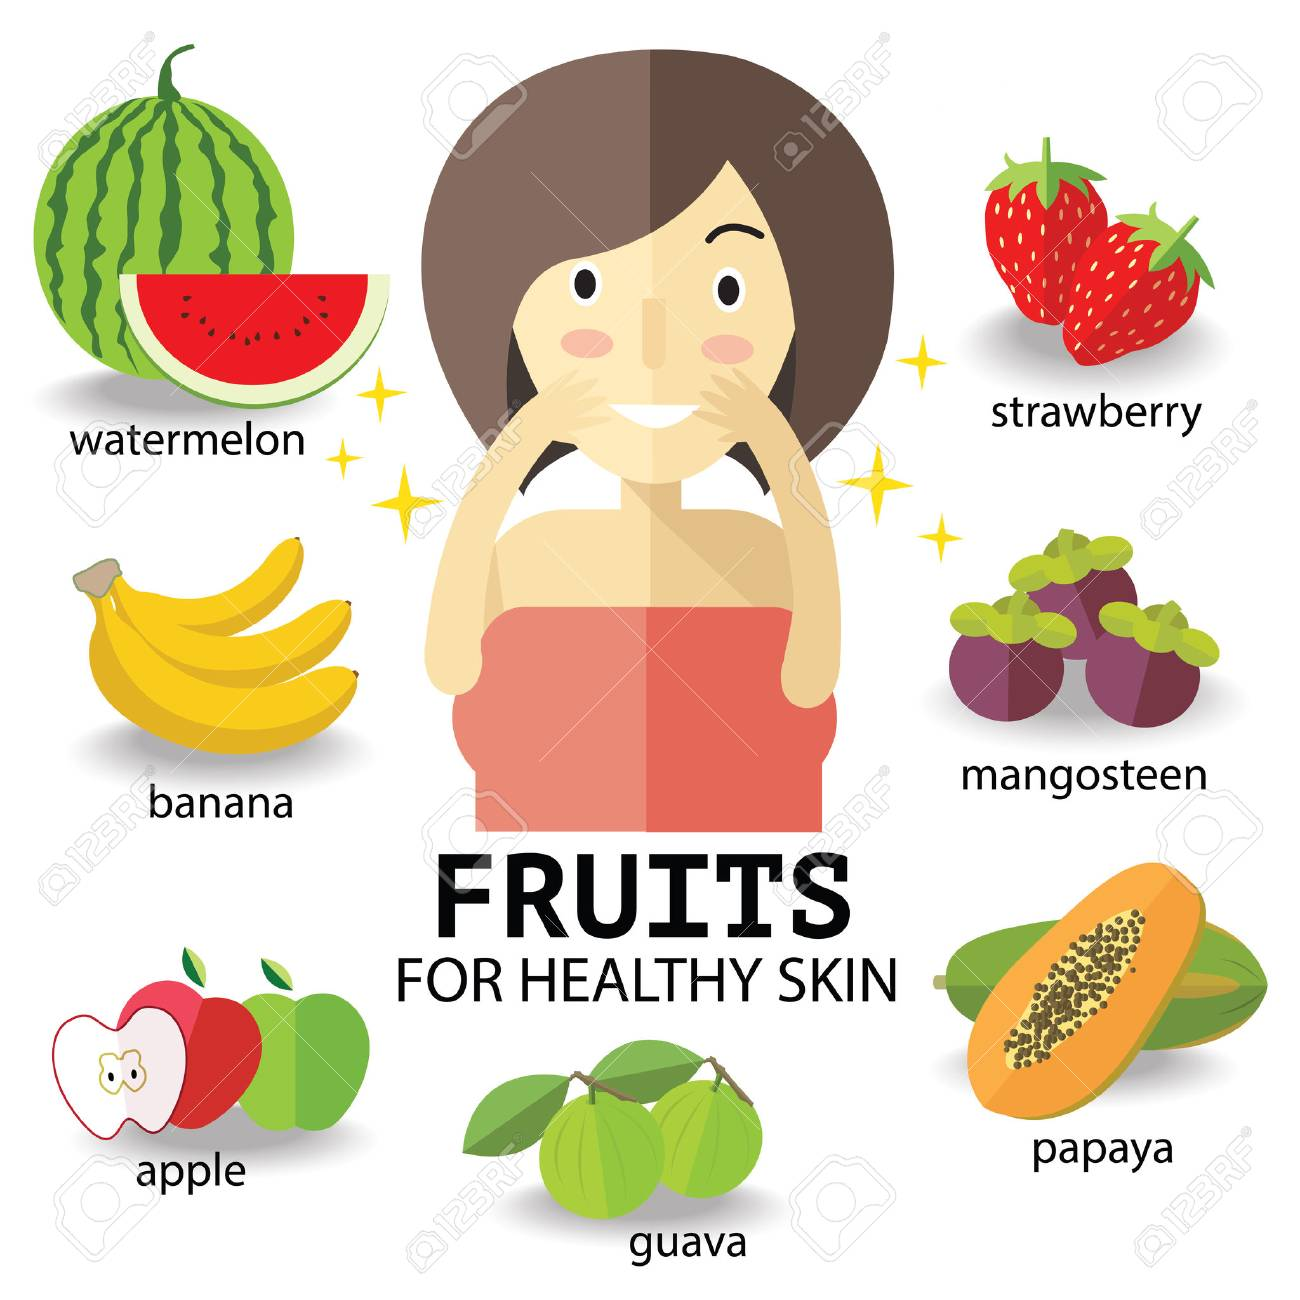 fruits for heathy skin royalty free cliparts vectors and stock